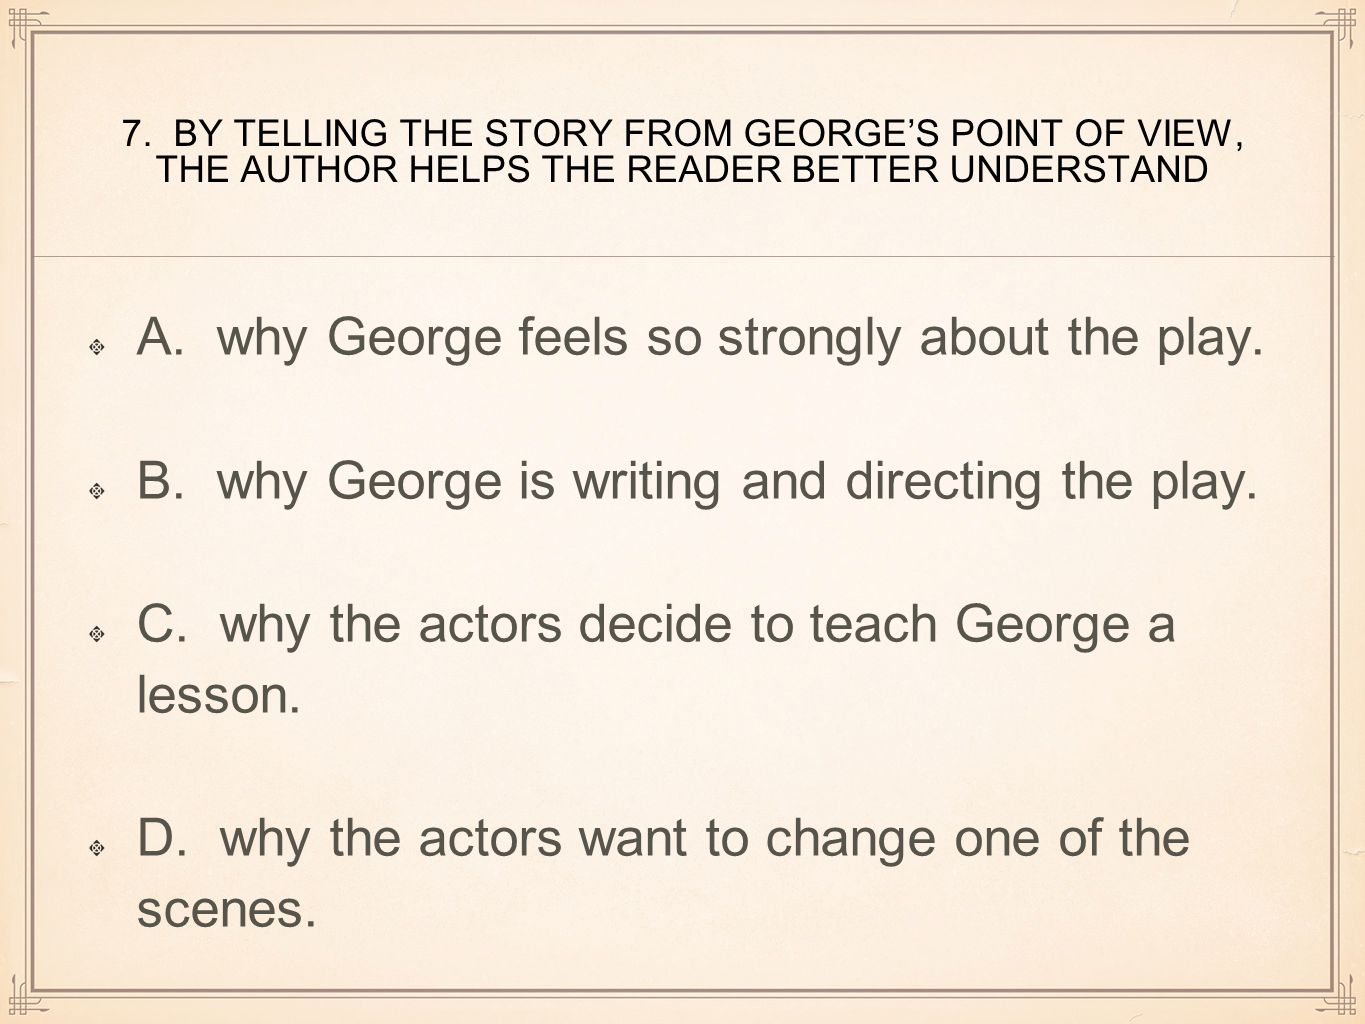 A. why George feels so strongly about the play.